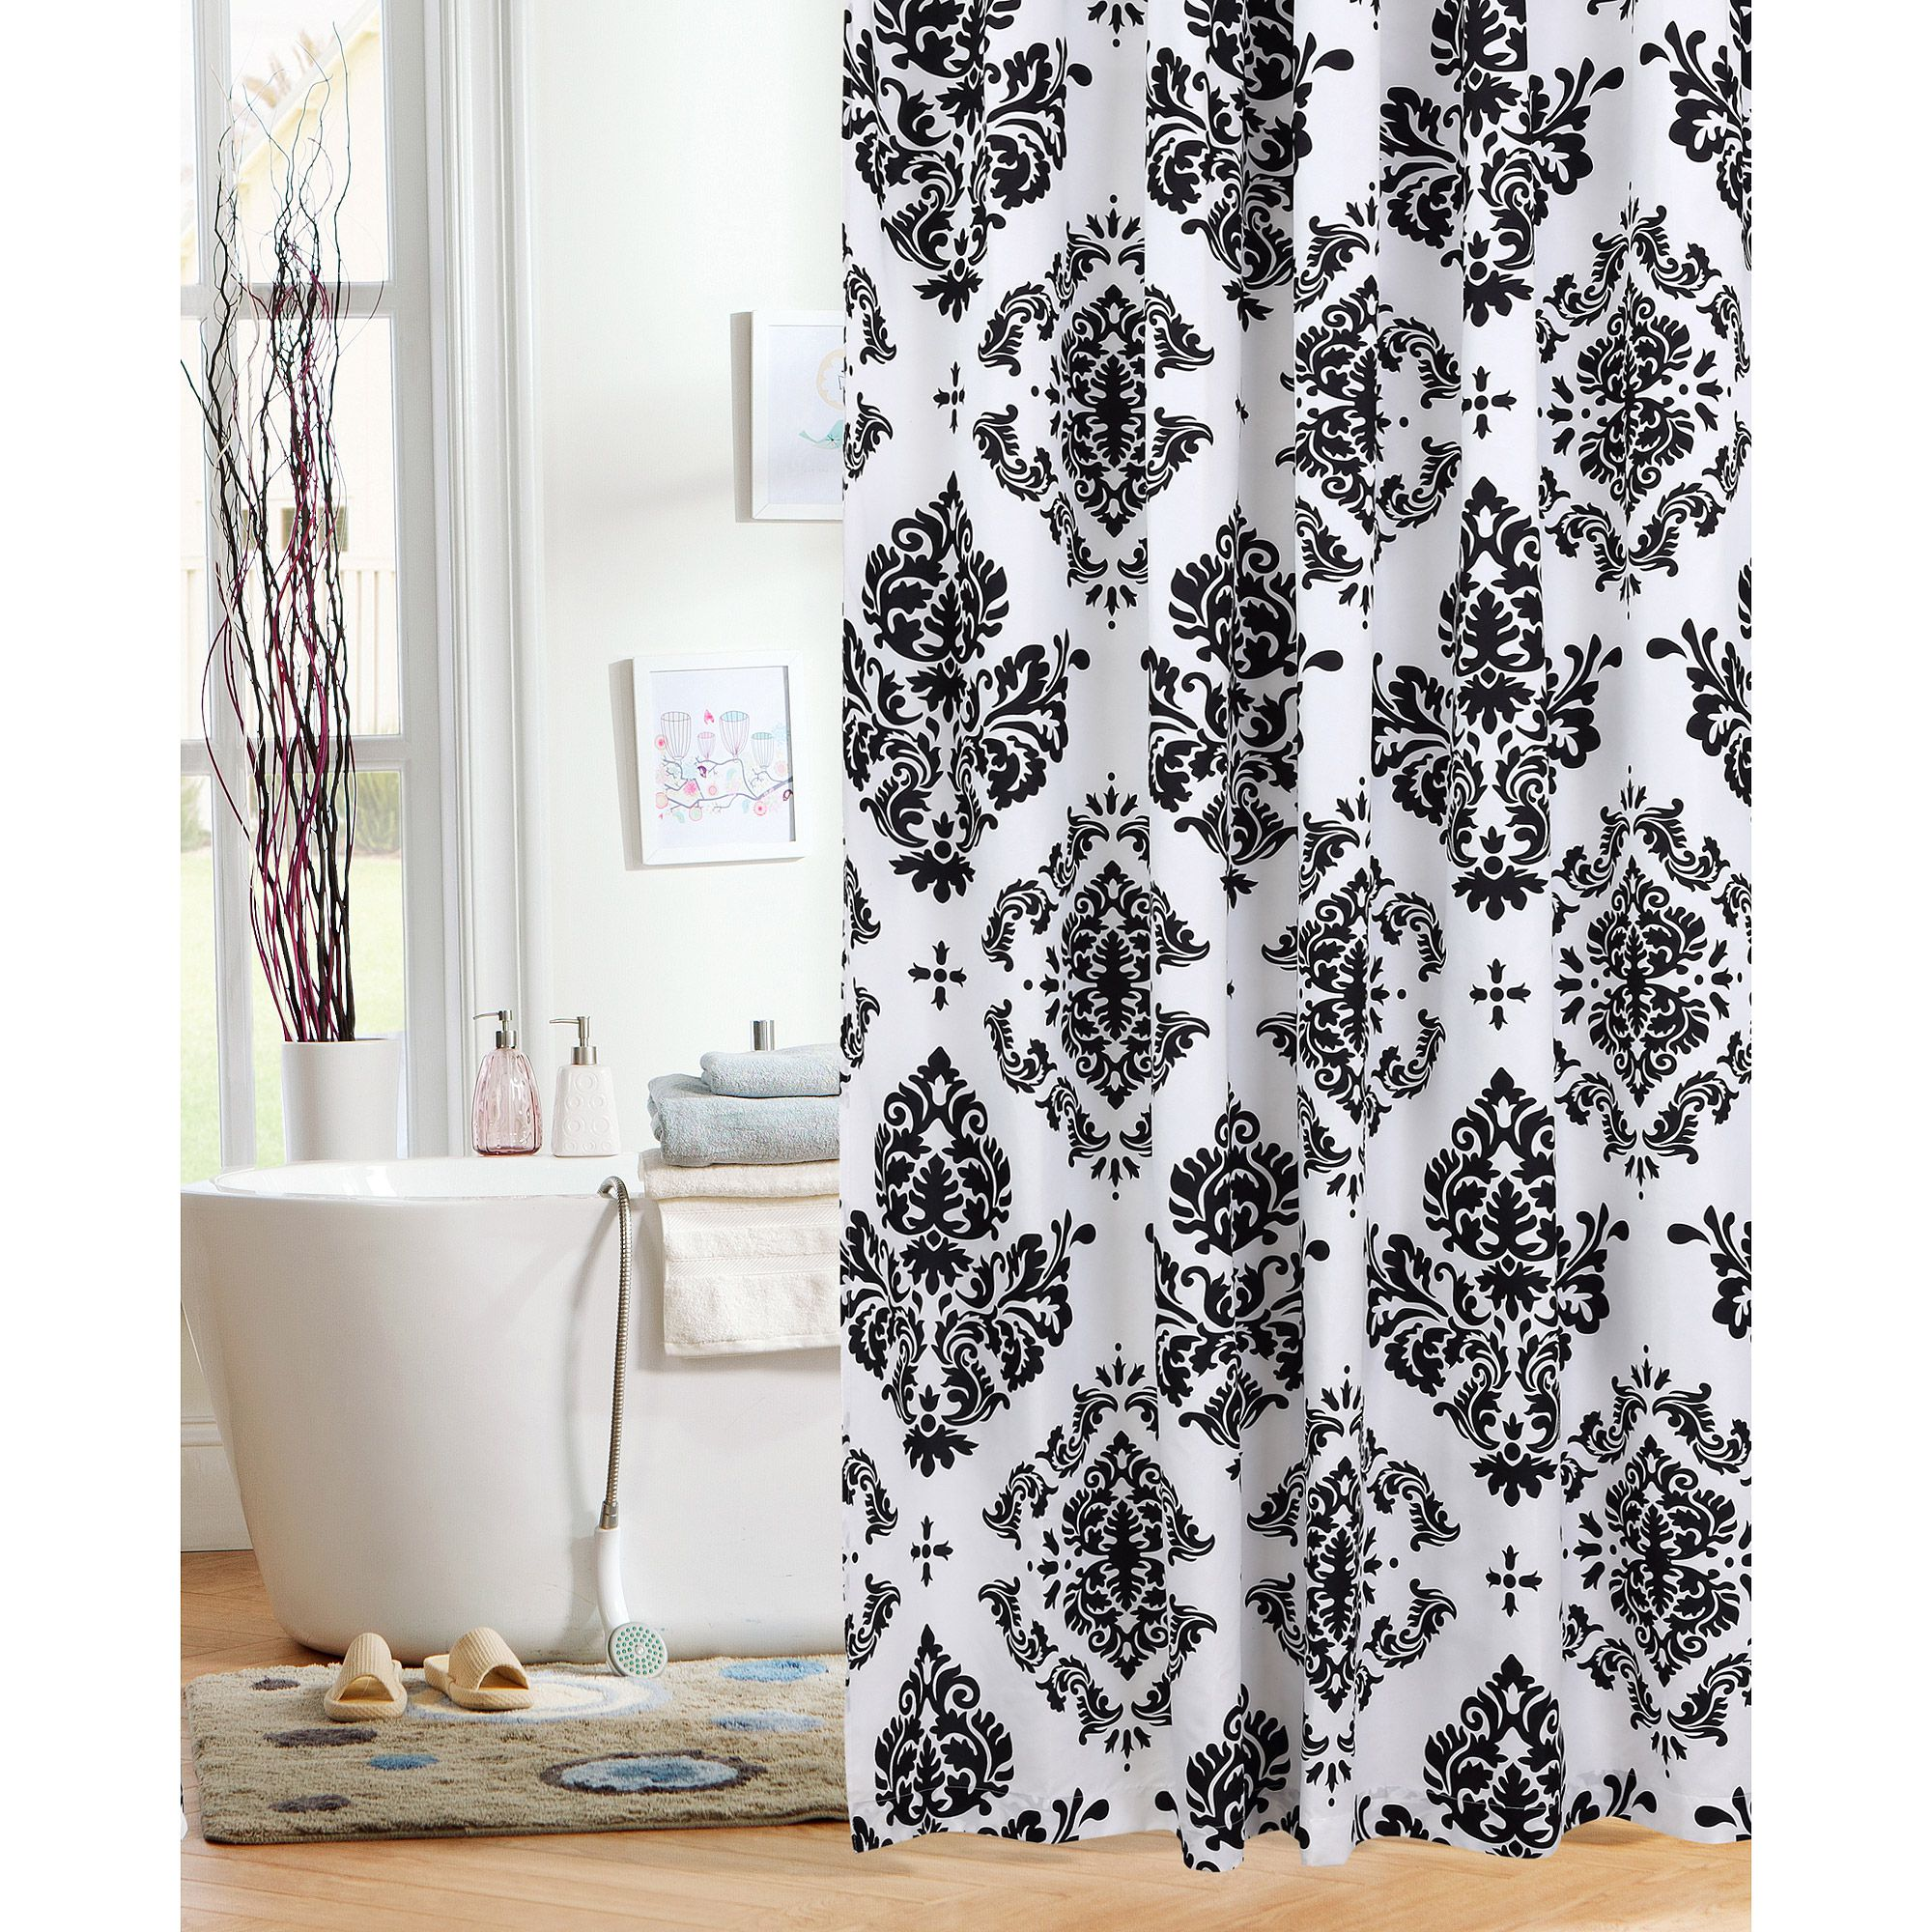 tips to choose cute shower curtains for kid s bathroom